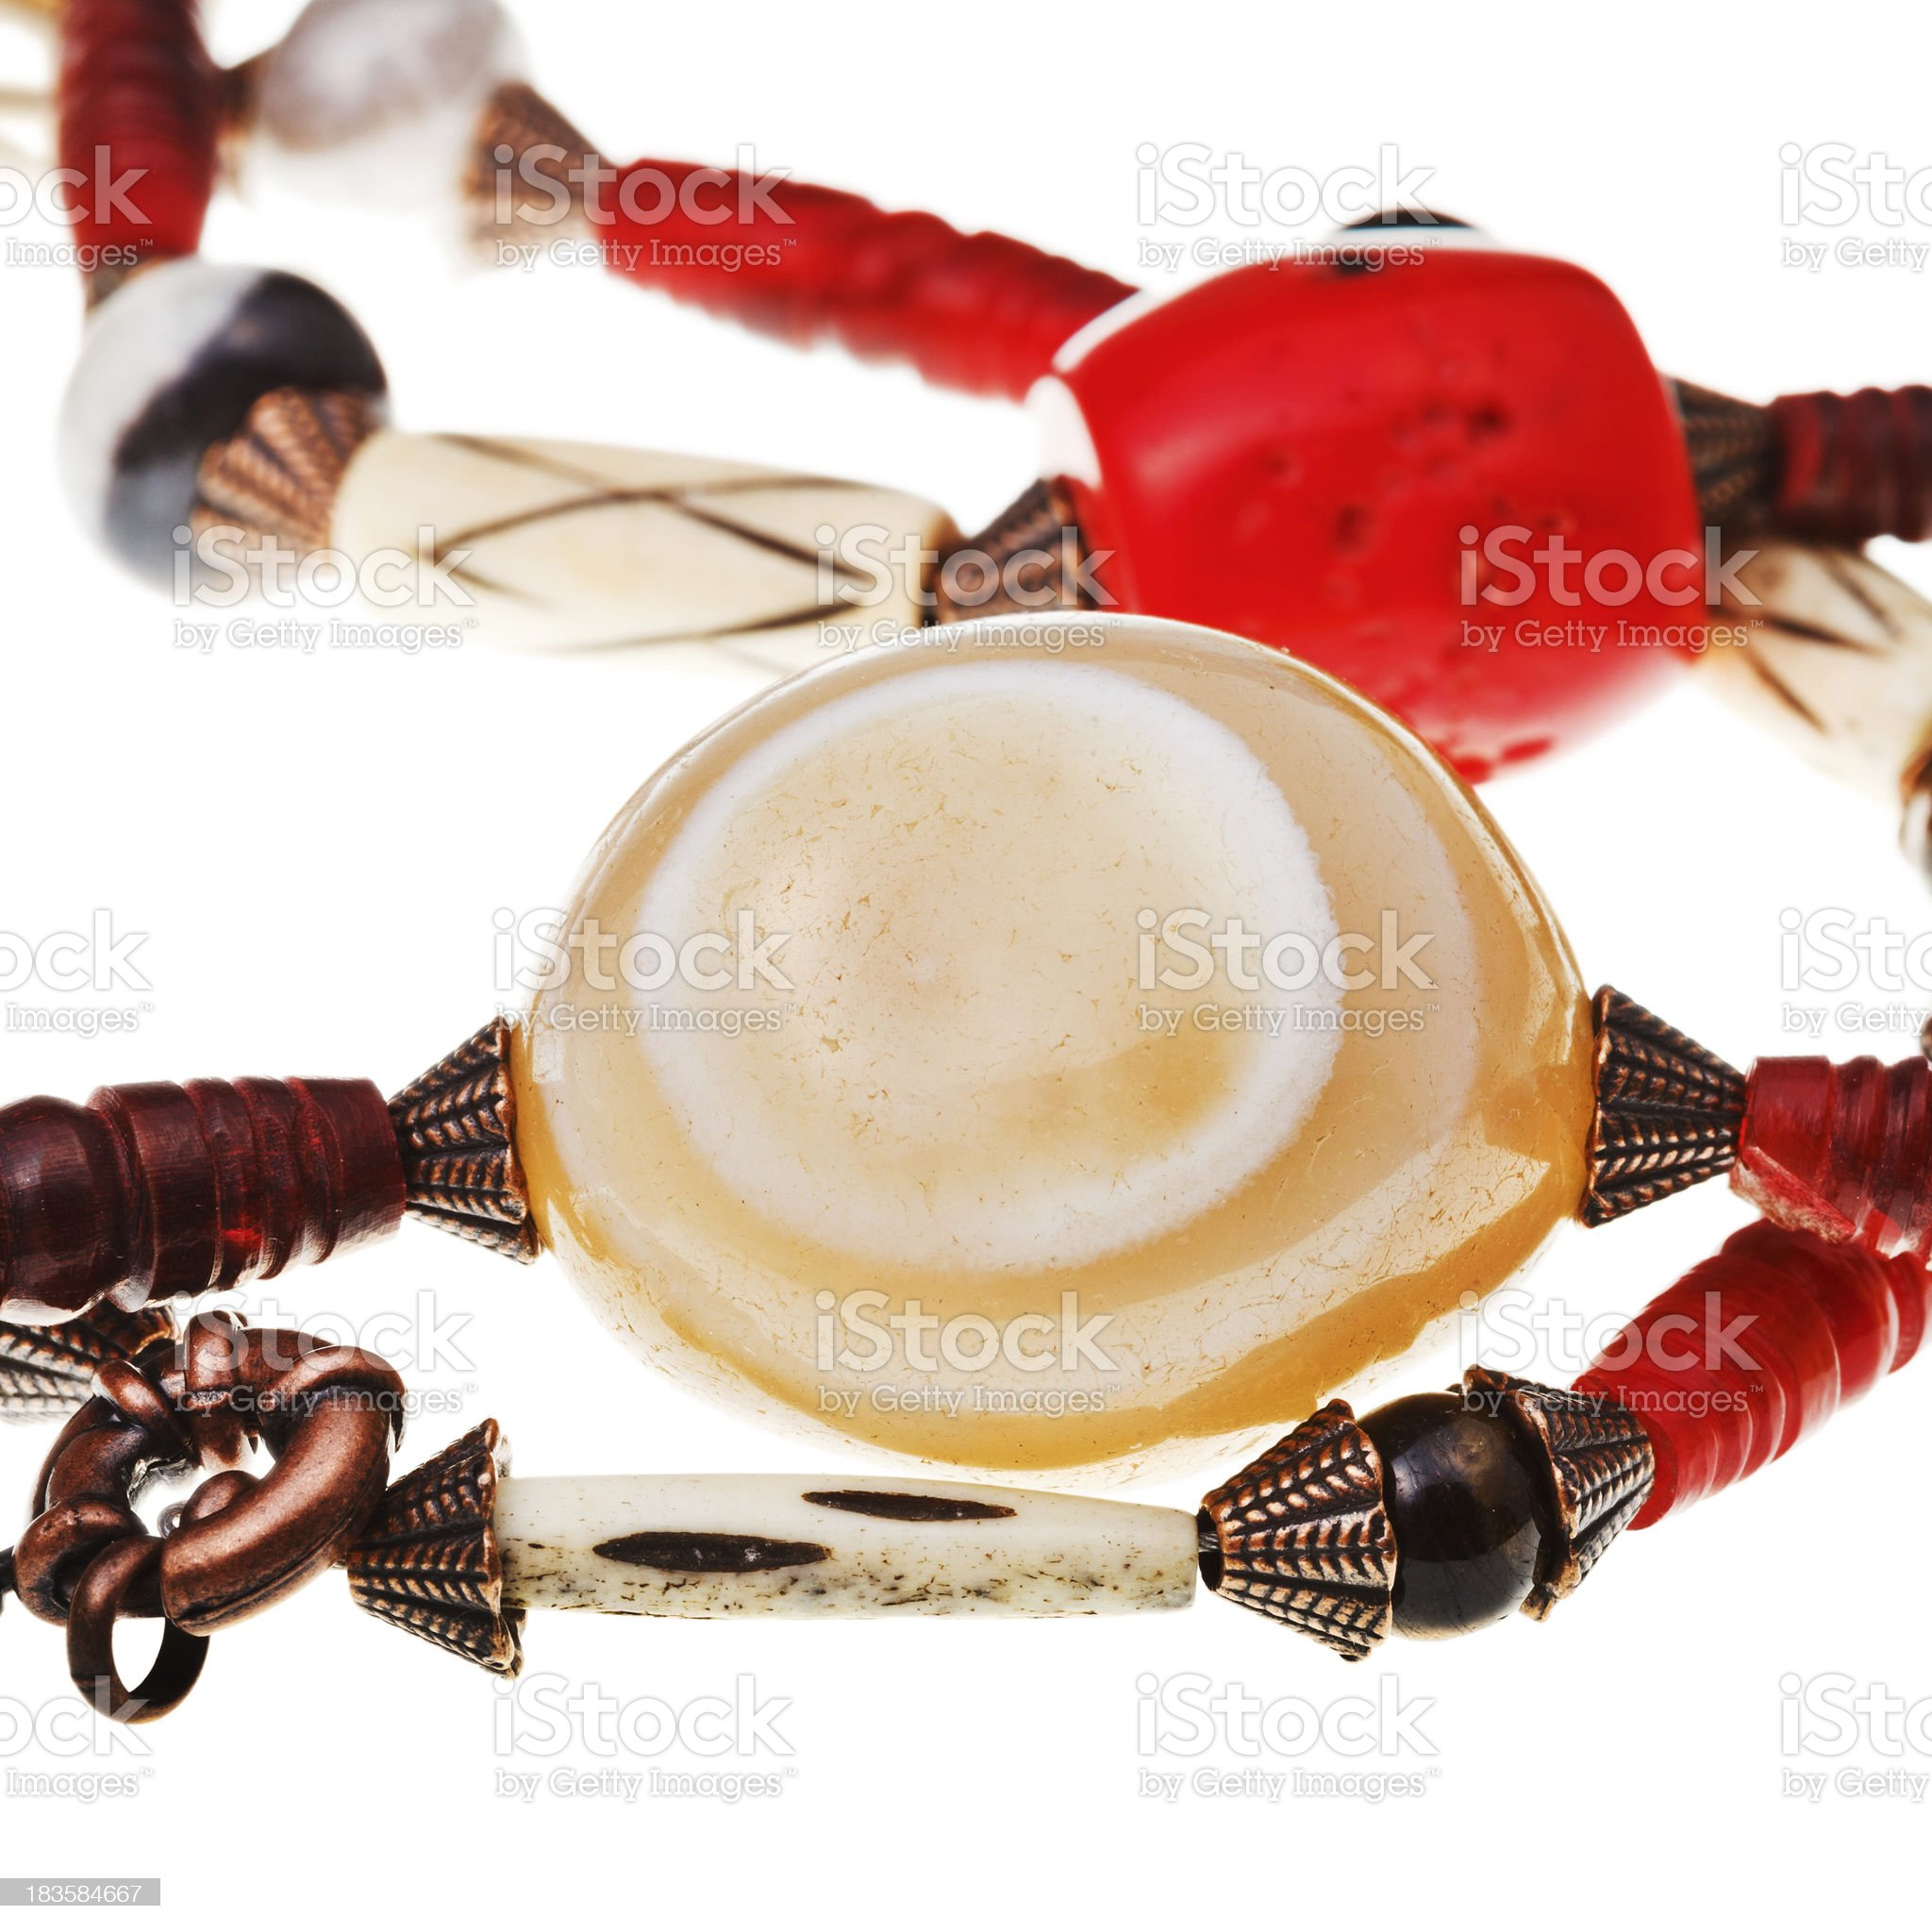 natural agate stone in string of beads royalty-free stock photo